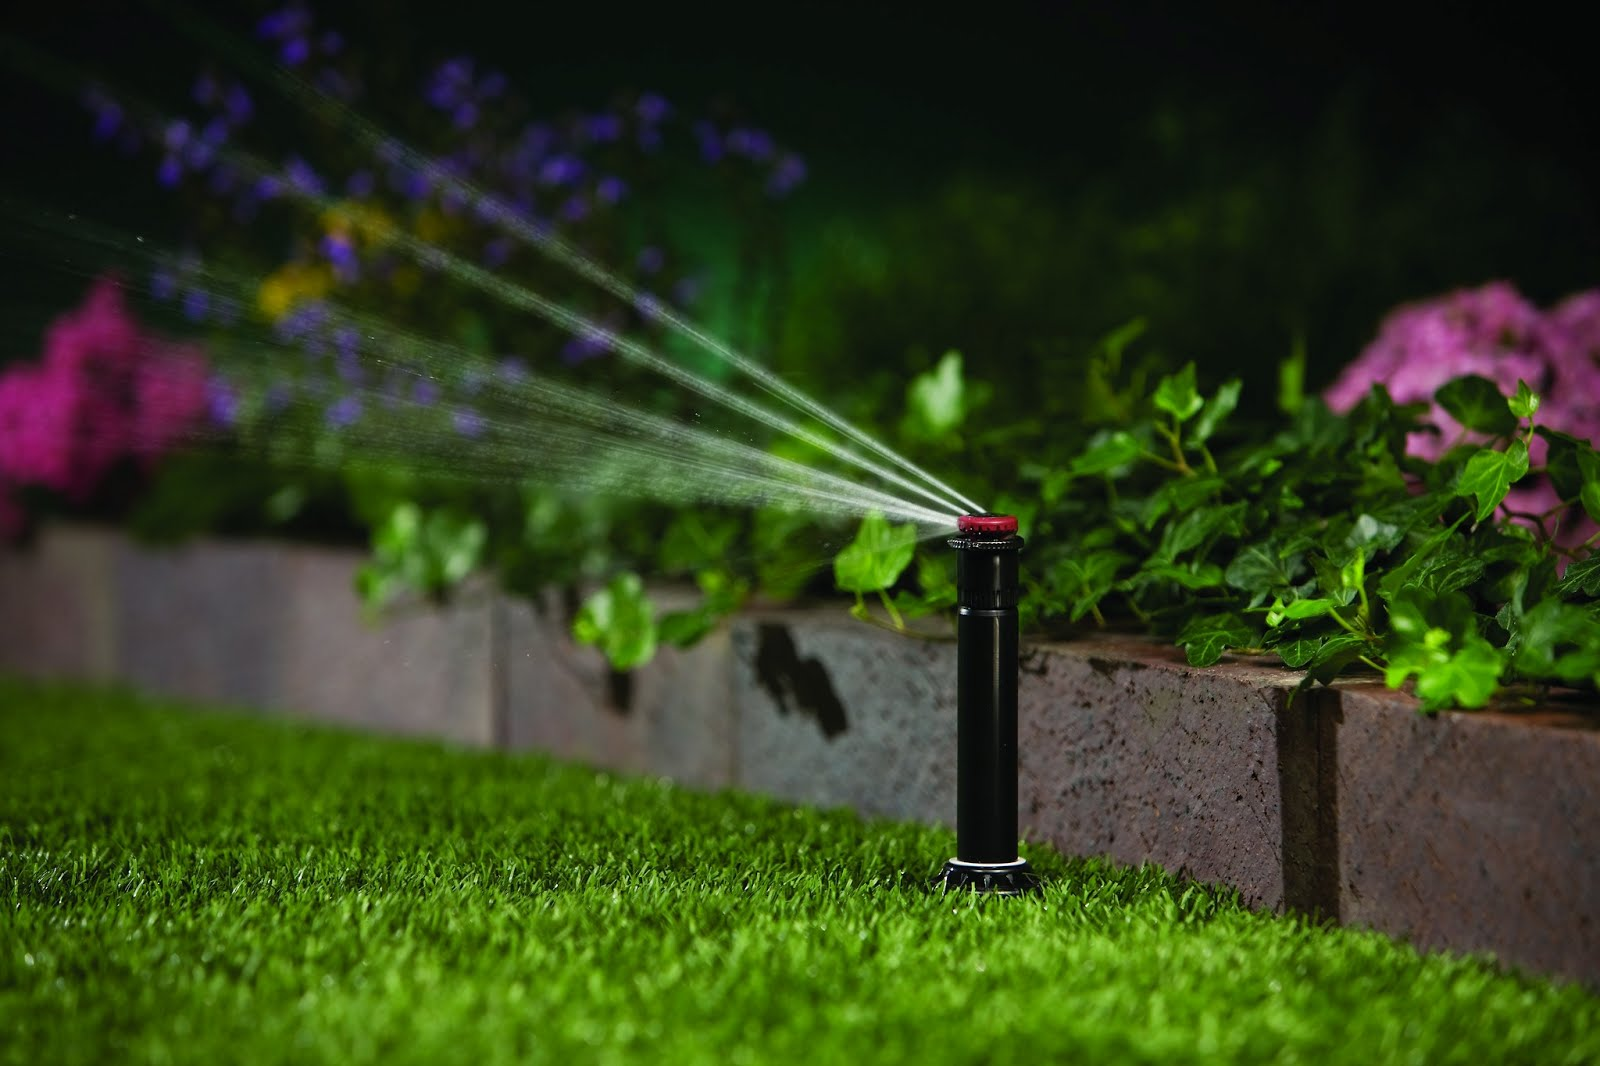 Sprinkler Services-Garland TX Professional Landscapers & Outdoor Living Designs-We offer Landscape Design, Outdoor Patios & Pergolas, Outdoor Living Spaces, Stonescapes, Residential & Commercial Landscaping, Irrigation Installation & Repairs, Drainage Systems, Landscape Lighting, Outdoor Living Spaces, Tree Service, Lawn Service, and more.